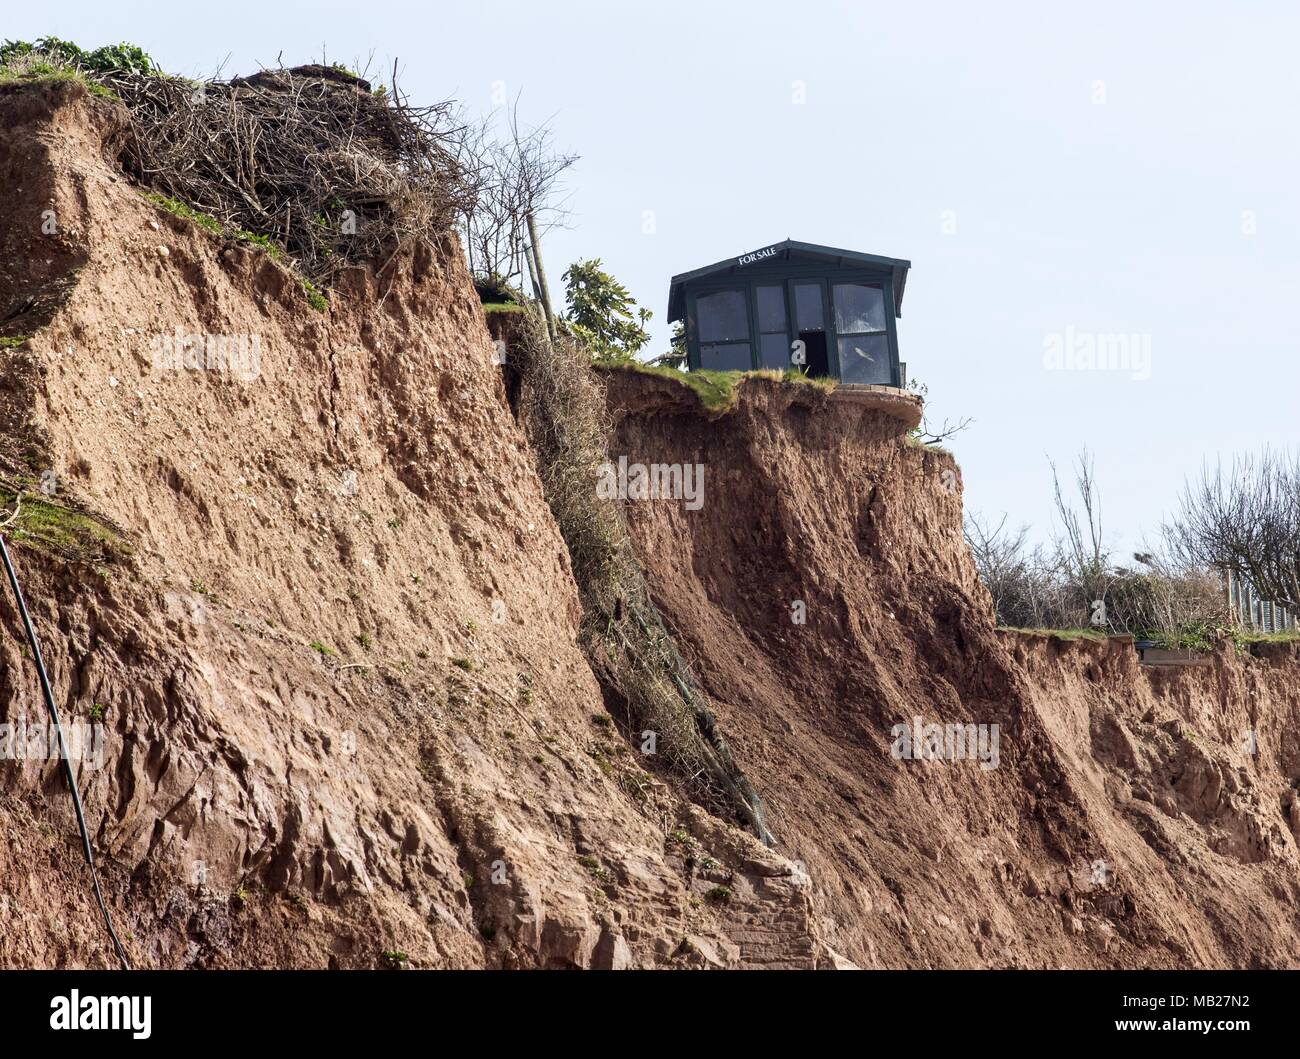 """Sidmouth, 6th Apr 18. A Devon resident has amusingly put a """"For Sale"""" notice on his shed – as it is now perched inches from a 100 foot drop. Four cliff falls in the last week have left properties in Cliff Road, Sidmouth missing metres of garden. The continuing erosion of Pennington Point, to the east of the Regency town, now endanger the mouth of the River Sid itself, which if affected could flood a large area ofthe town. Repair costs are estimated at cost £72 millionif the flooding happened. Photo Central / Alamy Live News Stock Photo"""